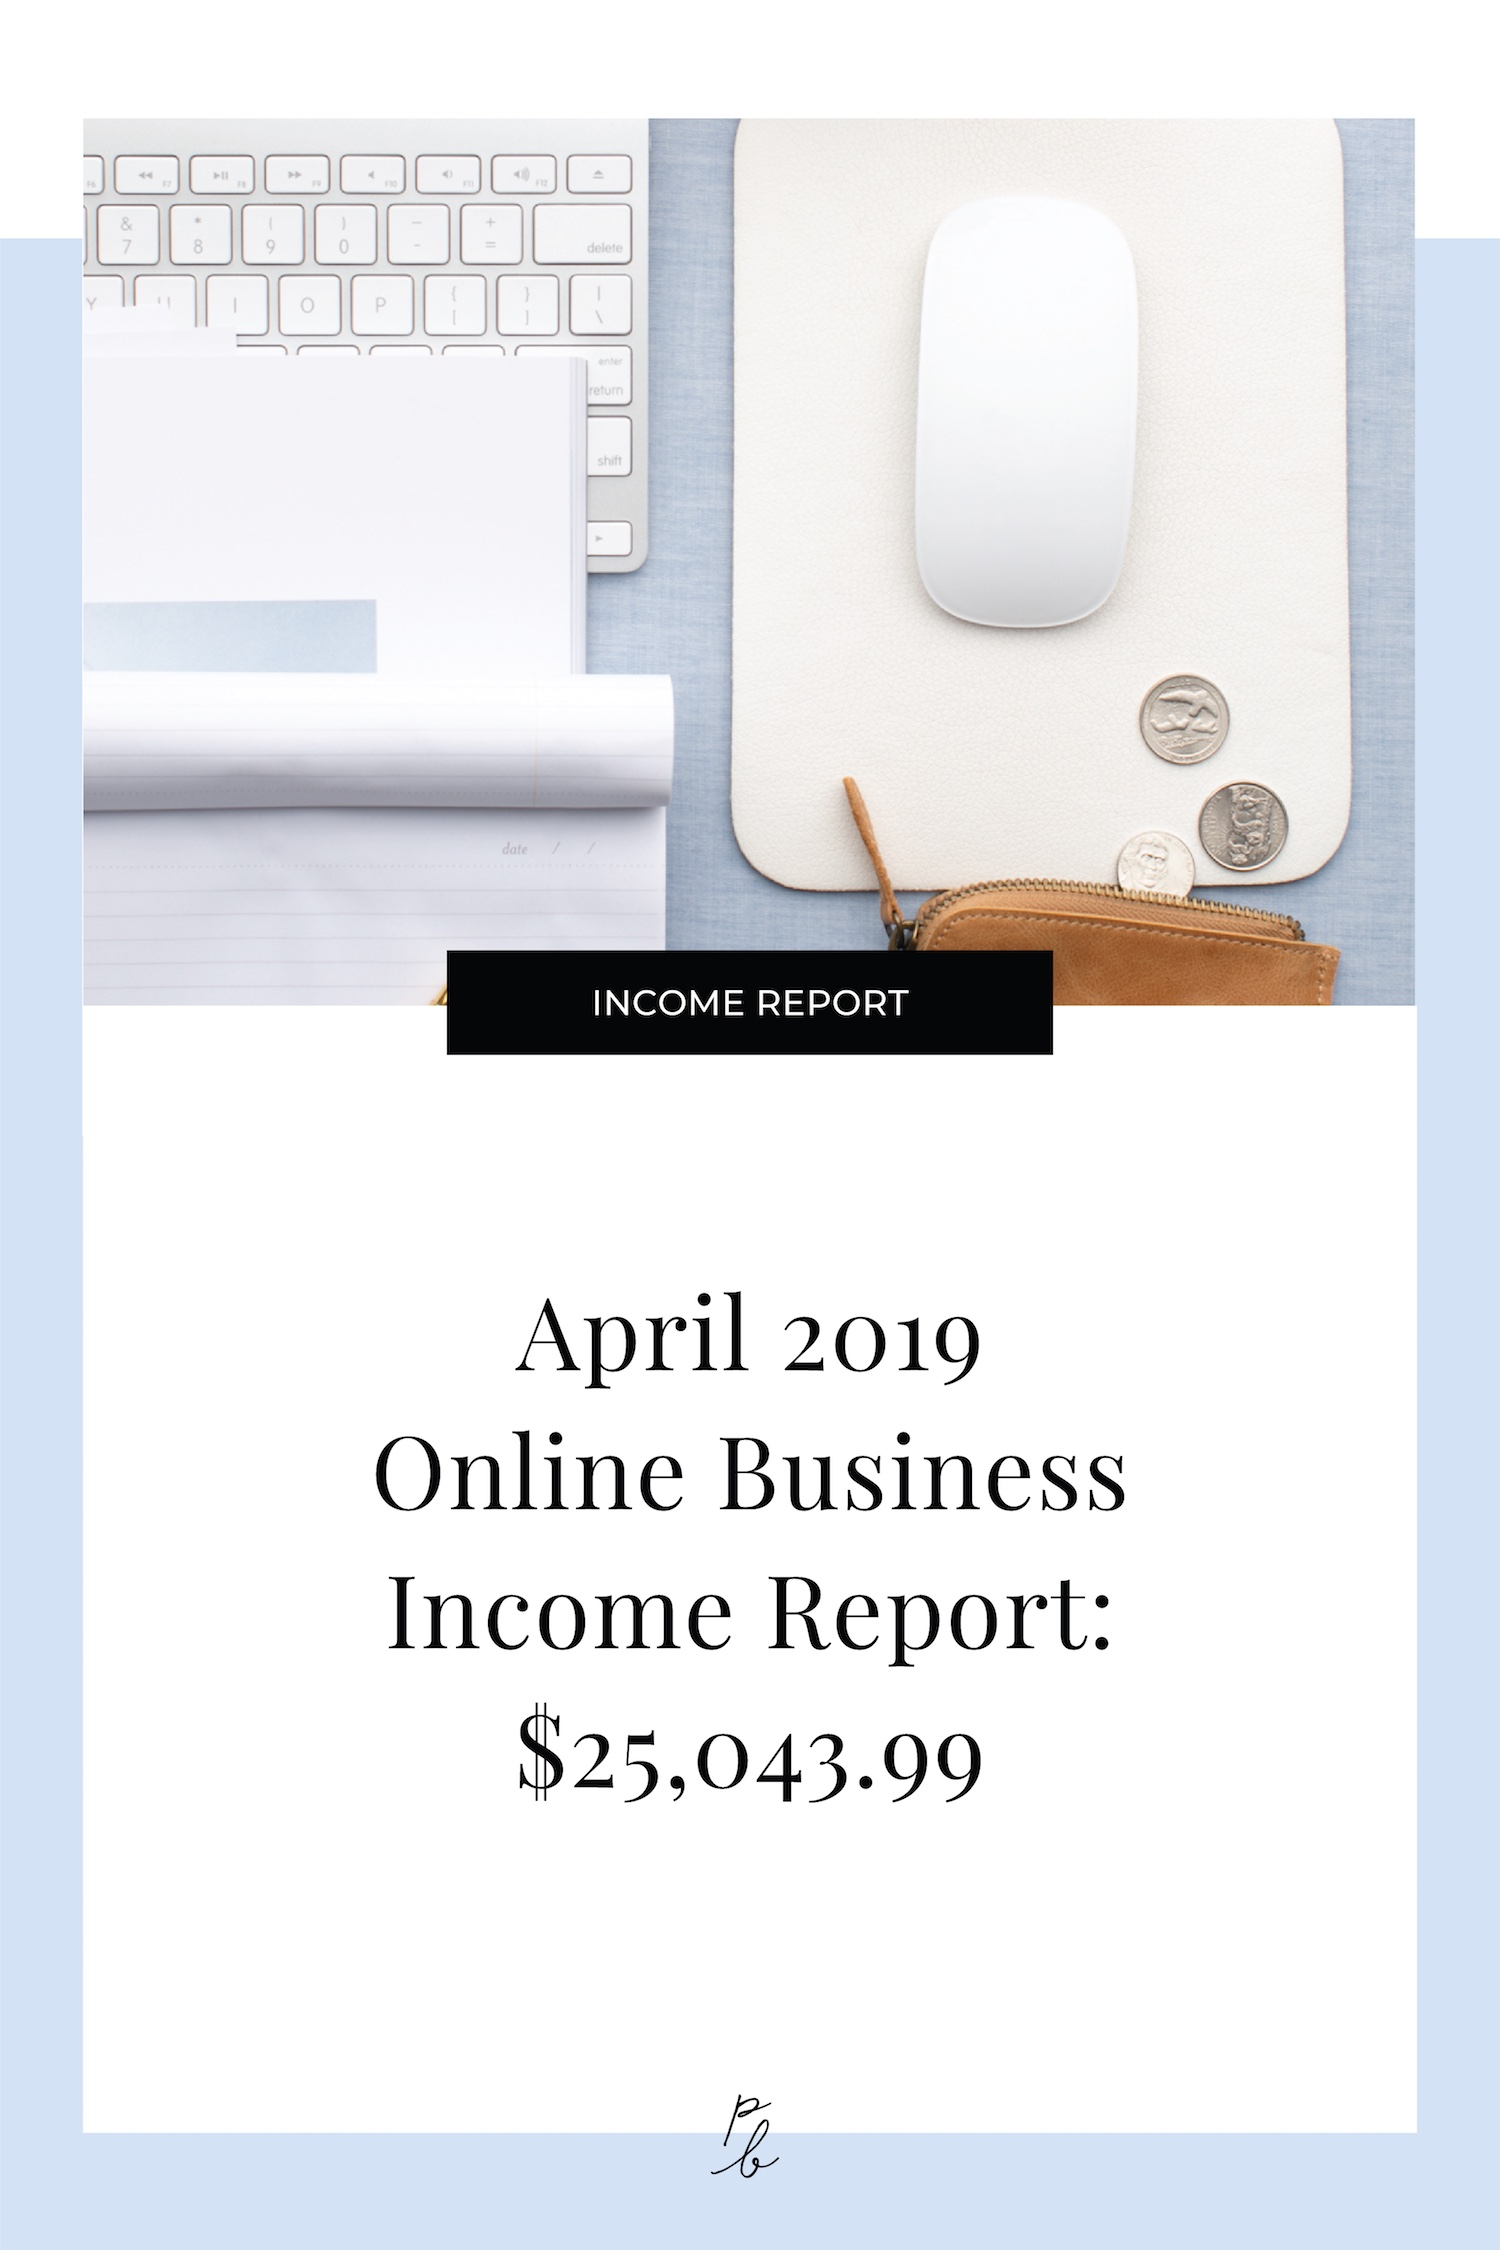 April 2019 Online Business Income Report $25,043.99.jpeg